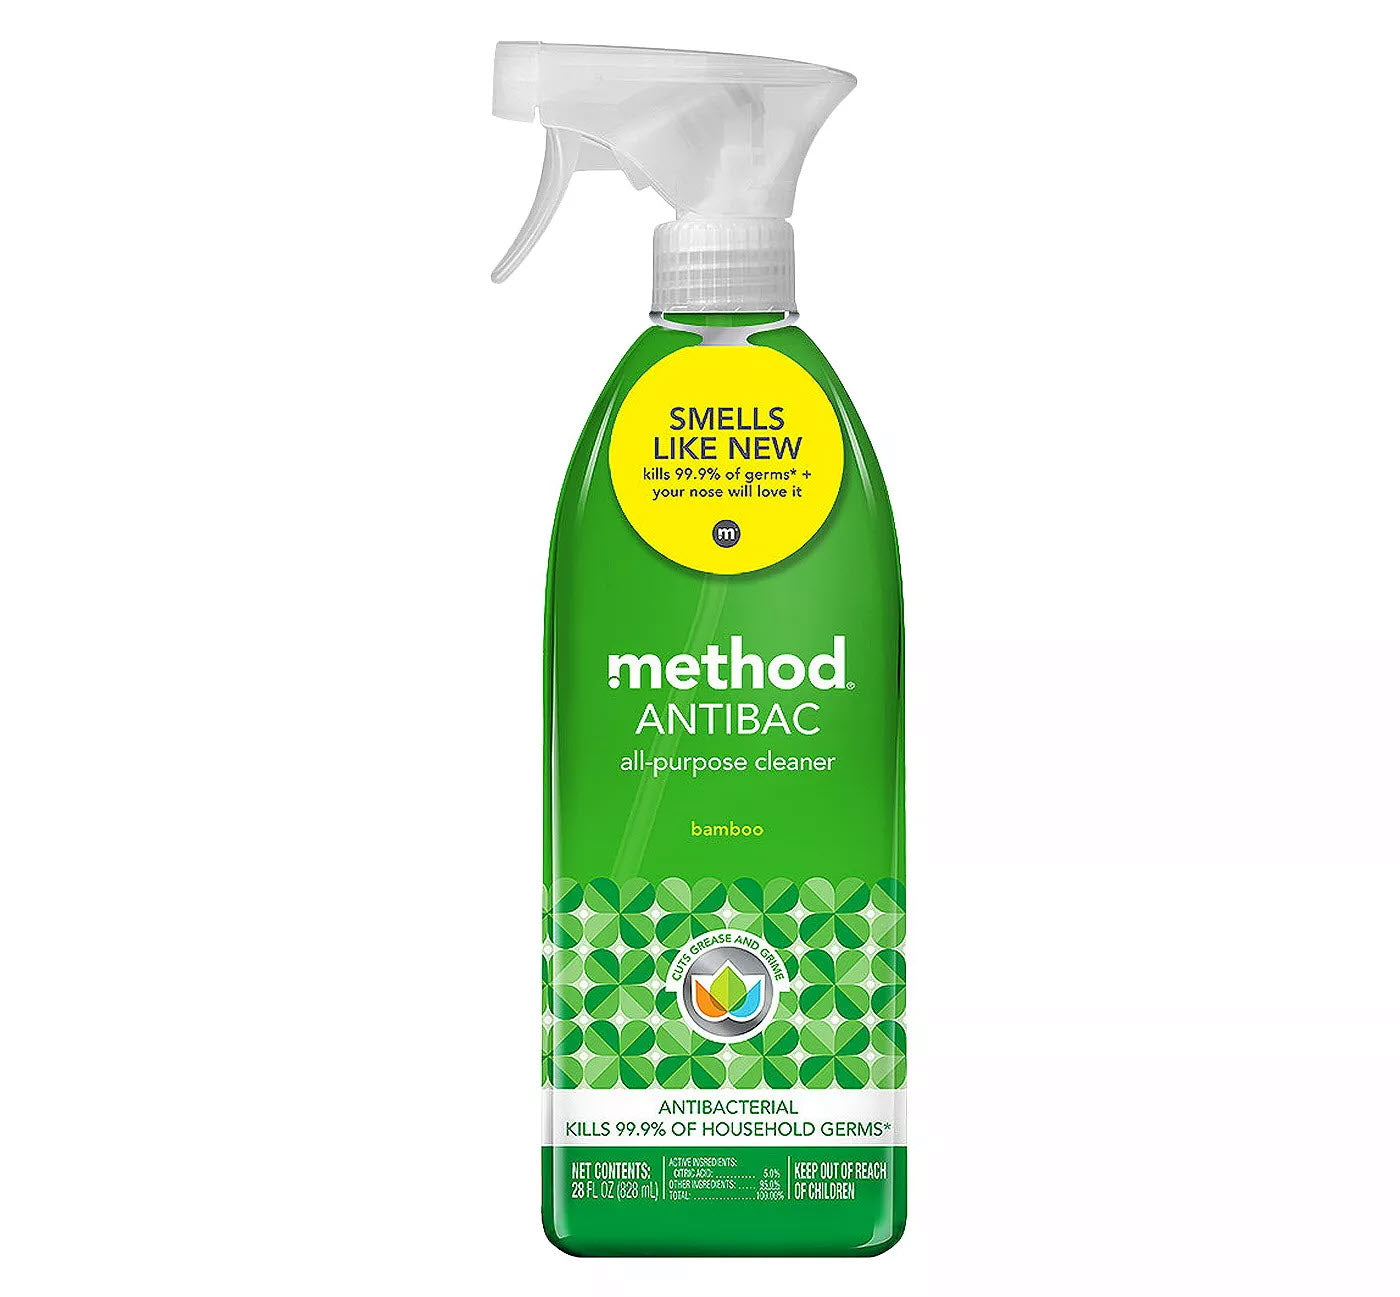 Method Antibacterial Cleaner Bamboo Spray Bottle - 28 fl oz